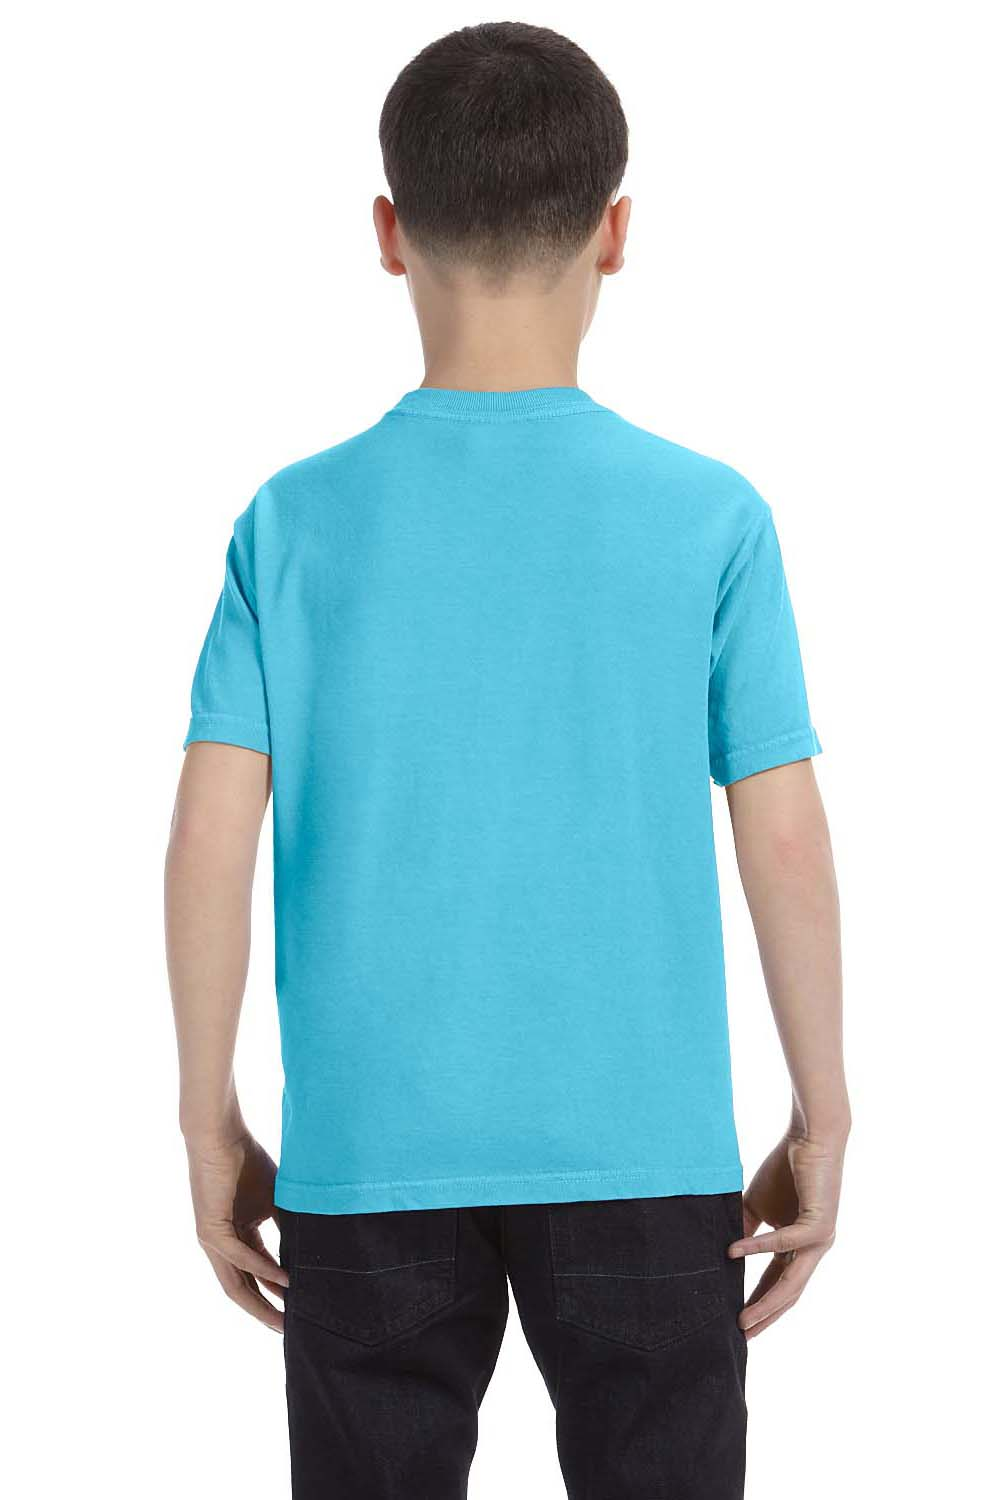 Comfort Colors C9018 Youth Short Sleeve Crewneck T-Shirt Lagoon Blue Back